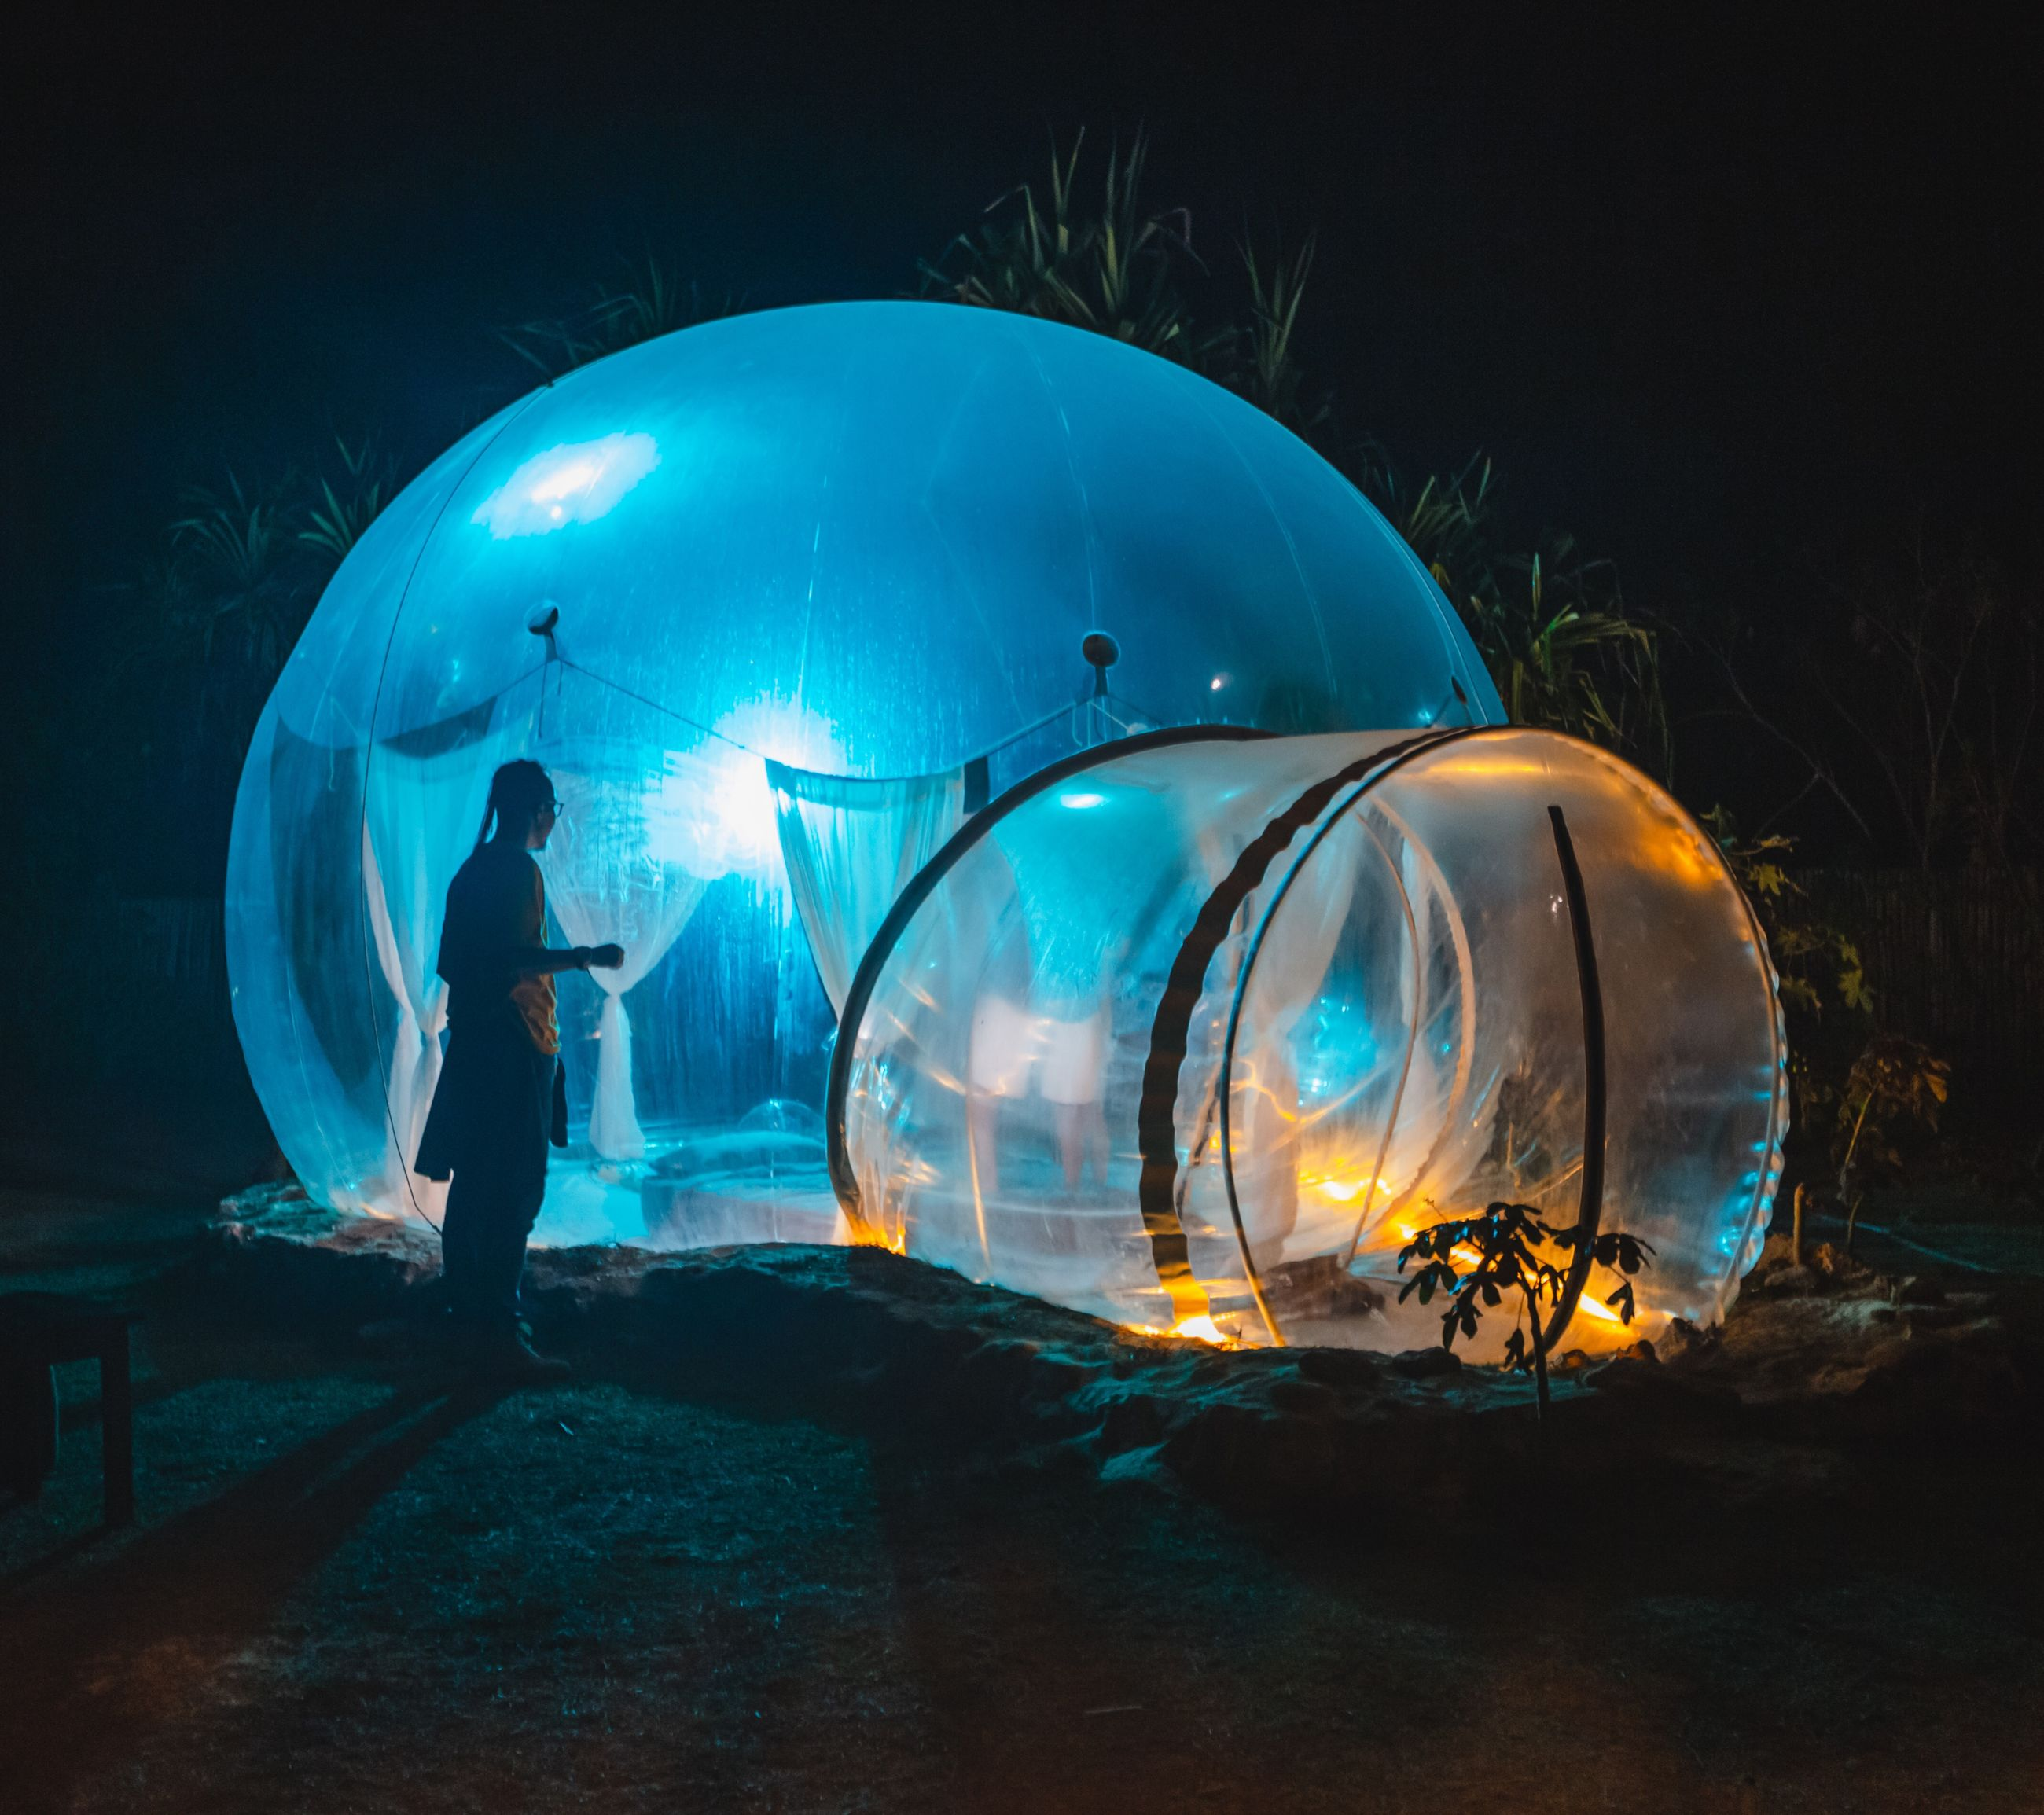 one person, real people, night, full length, illuminated, men, nature, lifestyles, standing, sphere, glowing, leisure activity, outdoors, land, blue, side view, shape, lighting equipment, transparent, digital composite